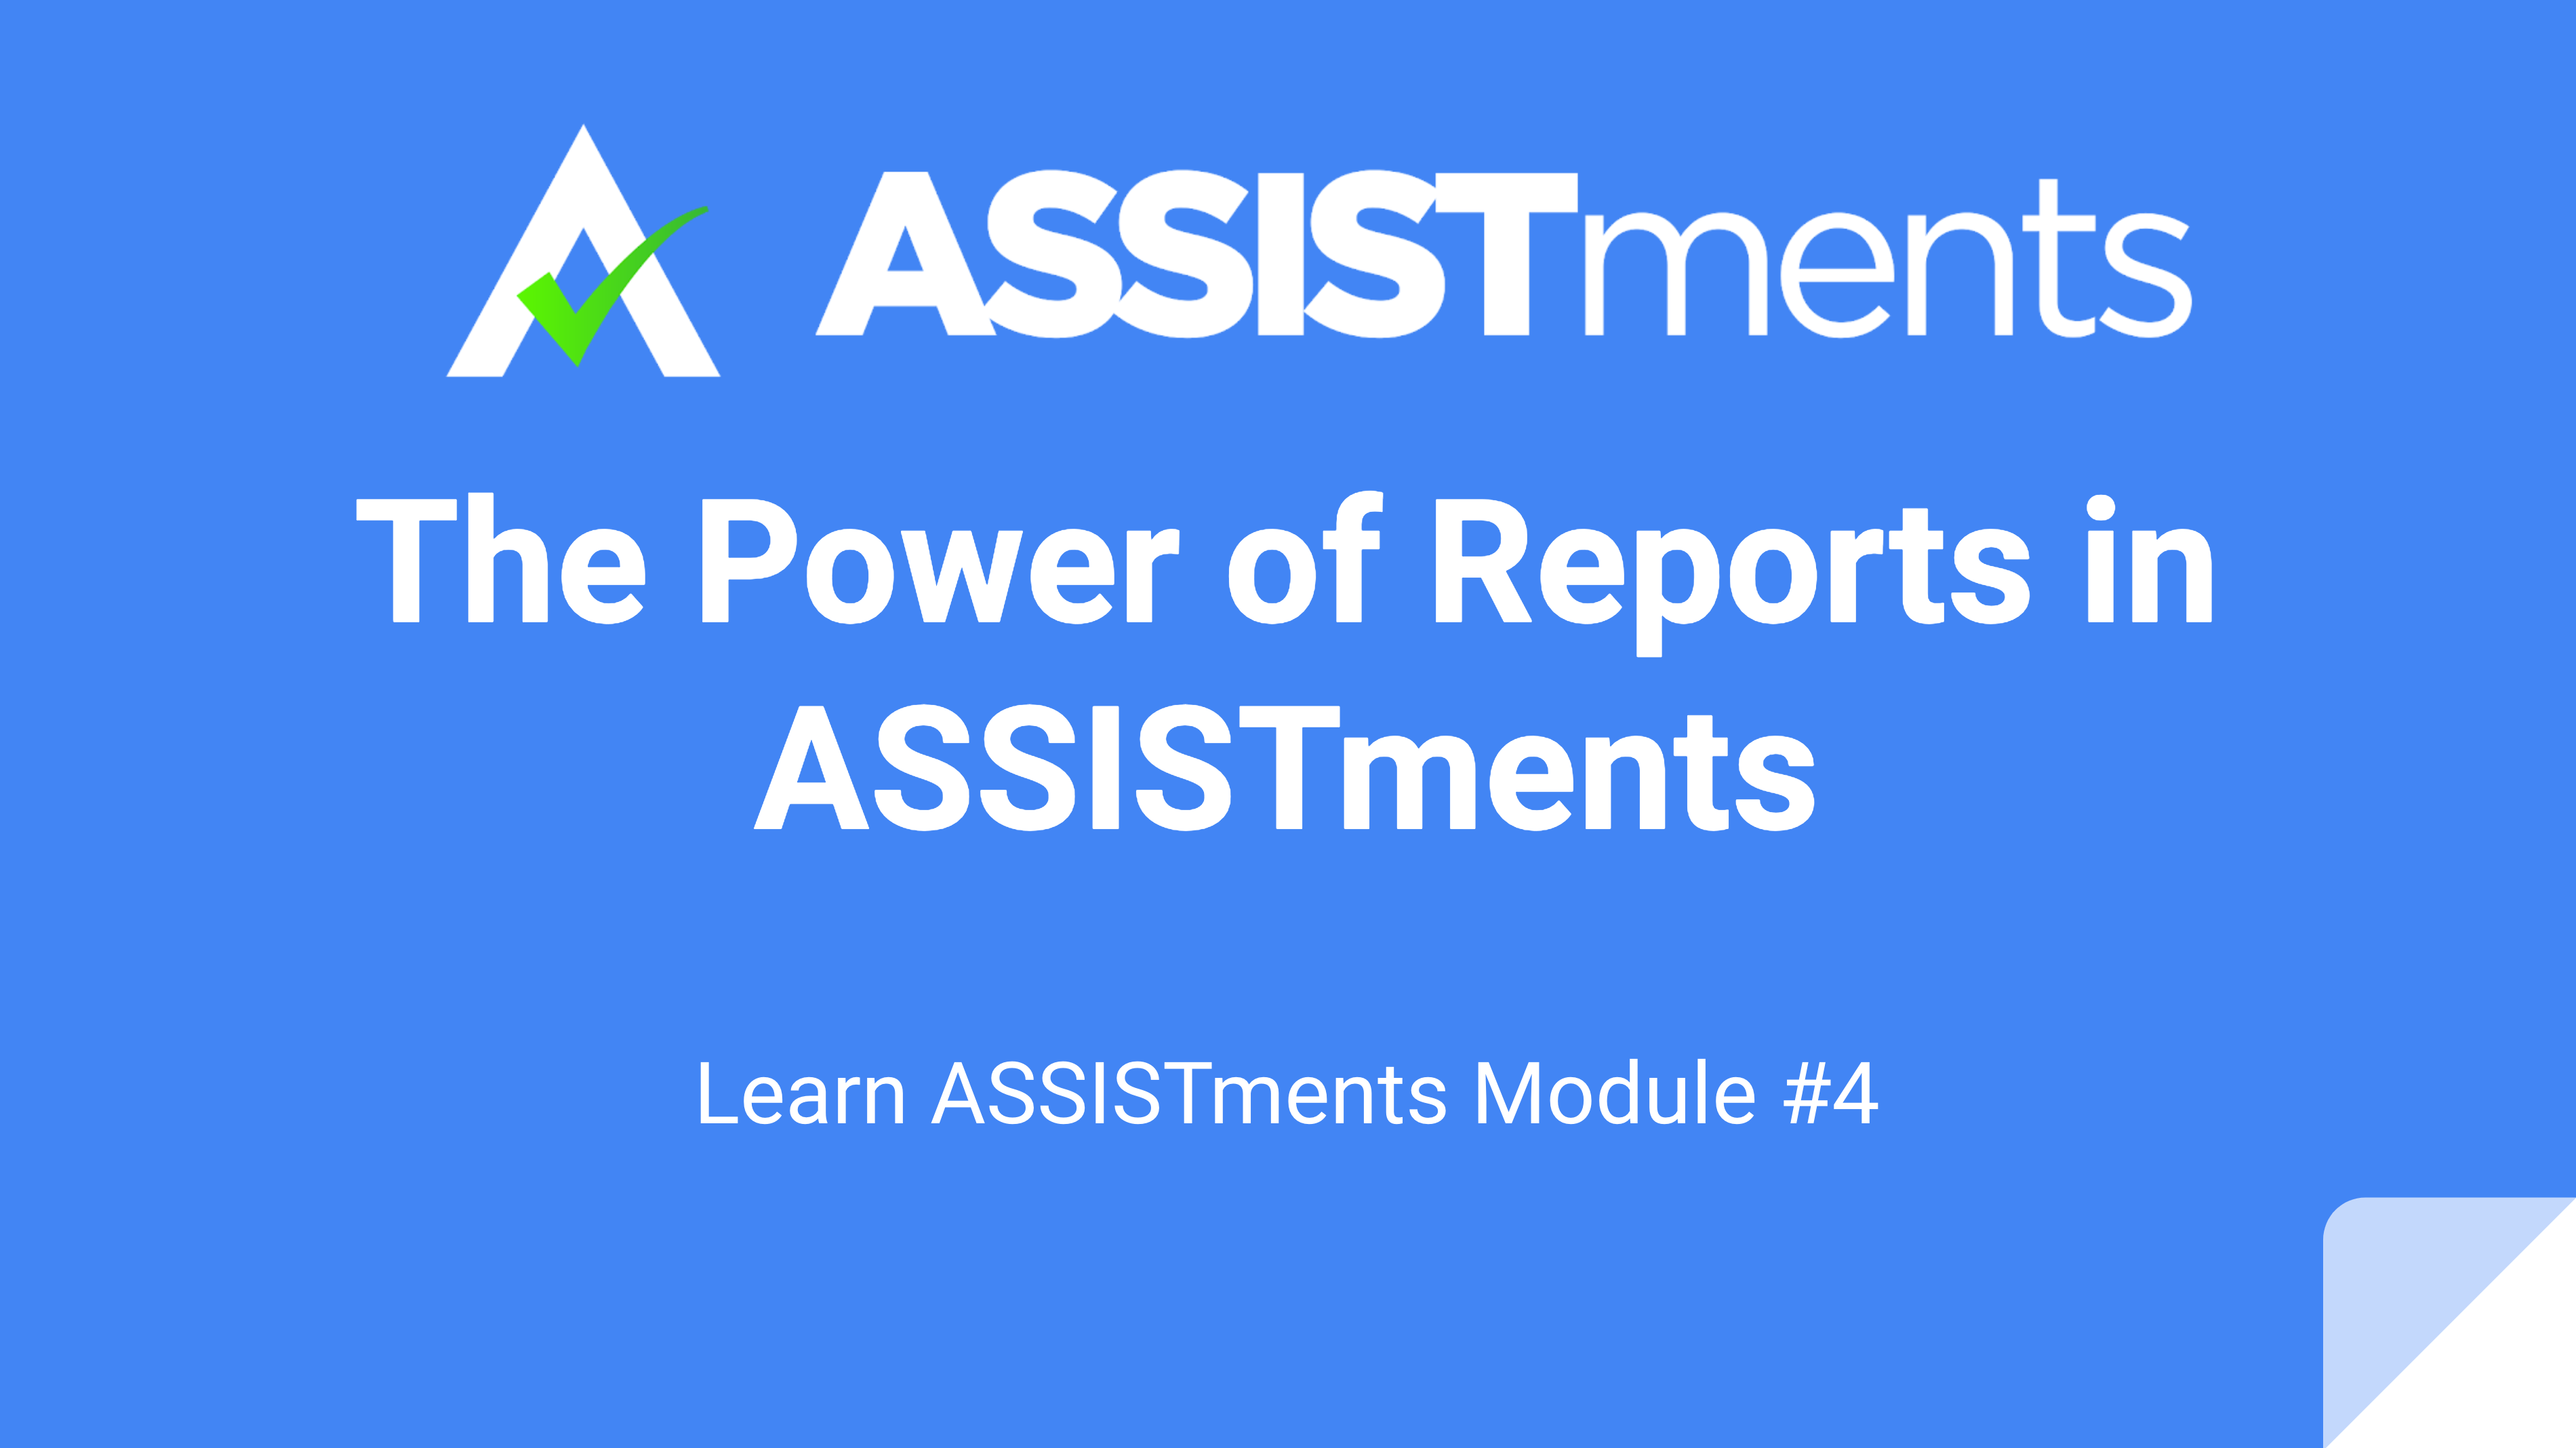 Learn ASSISTments Module #4